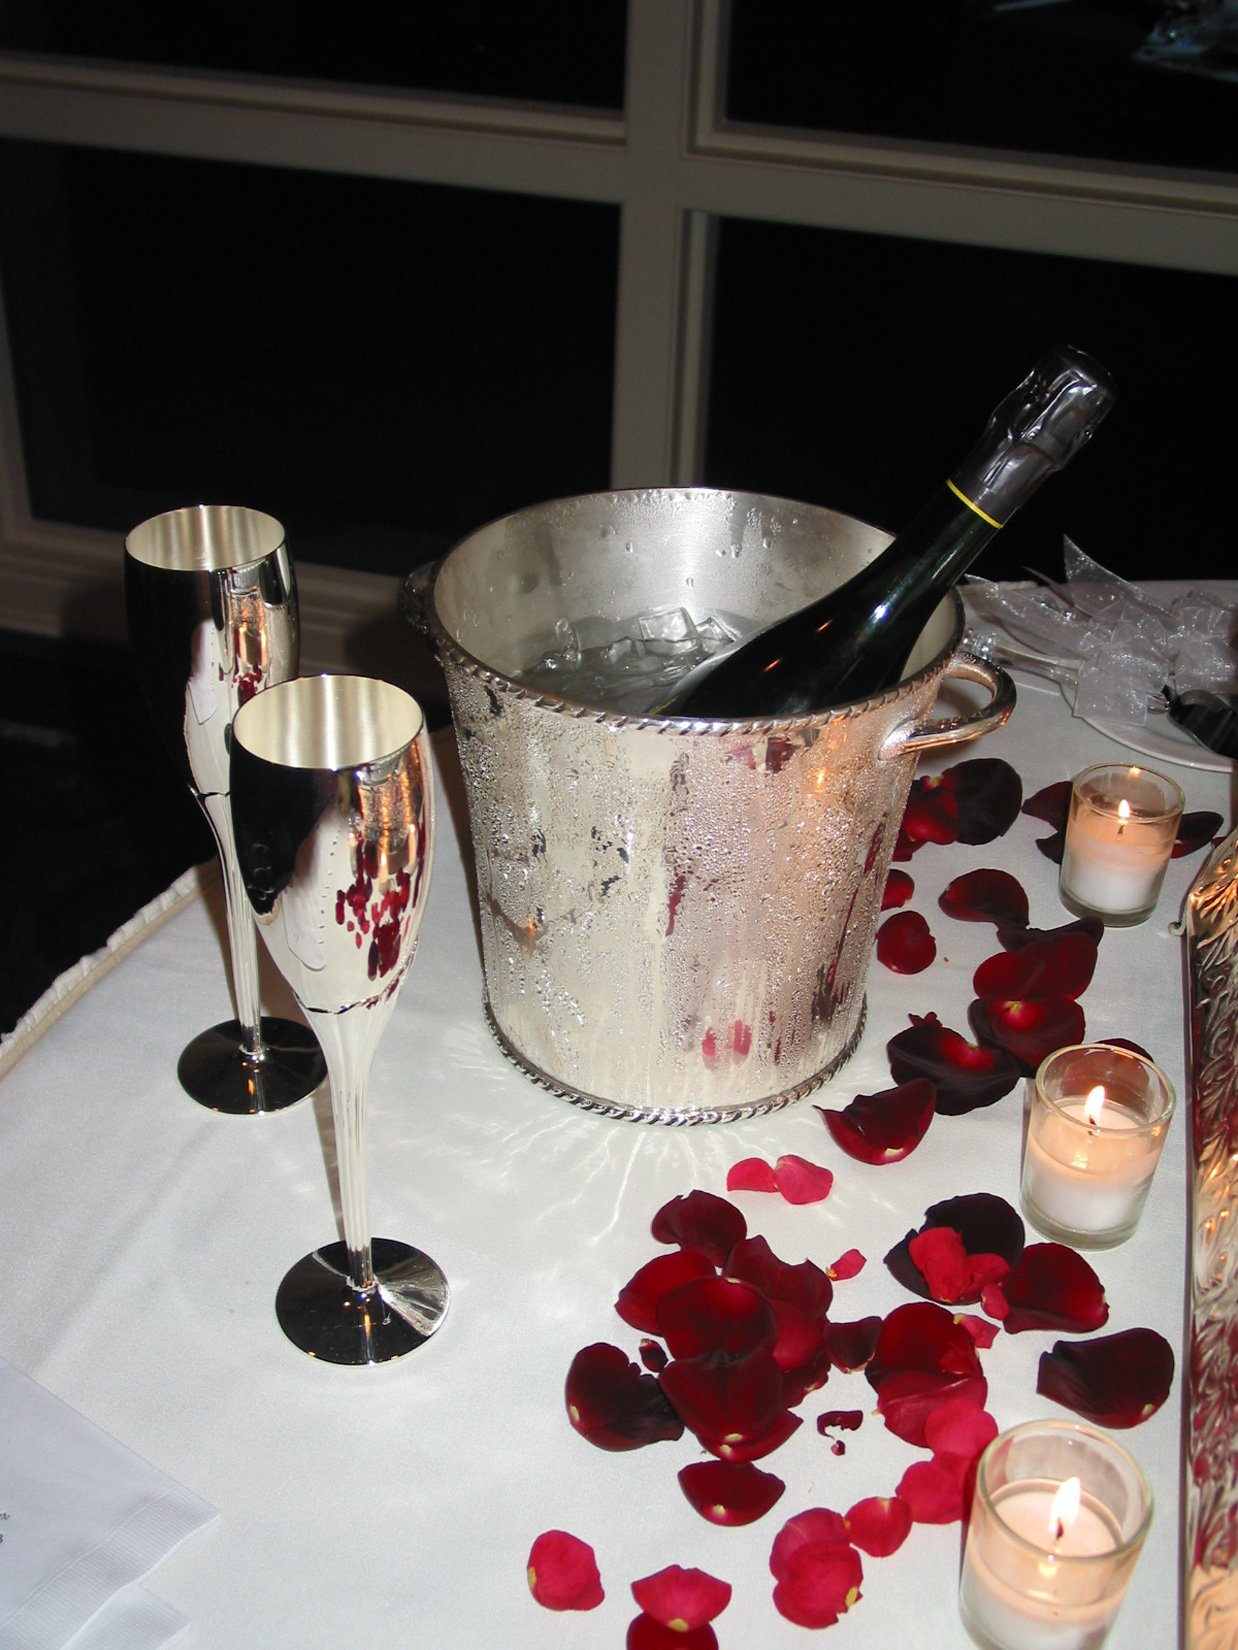 Why is champagne perfect for Valentine's Day?